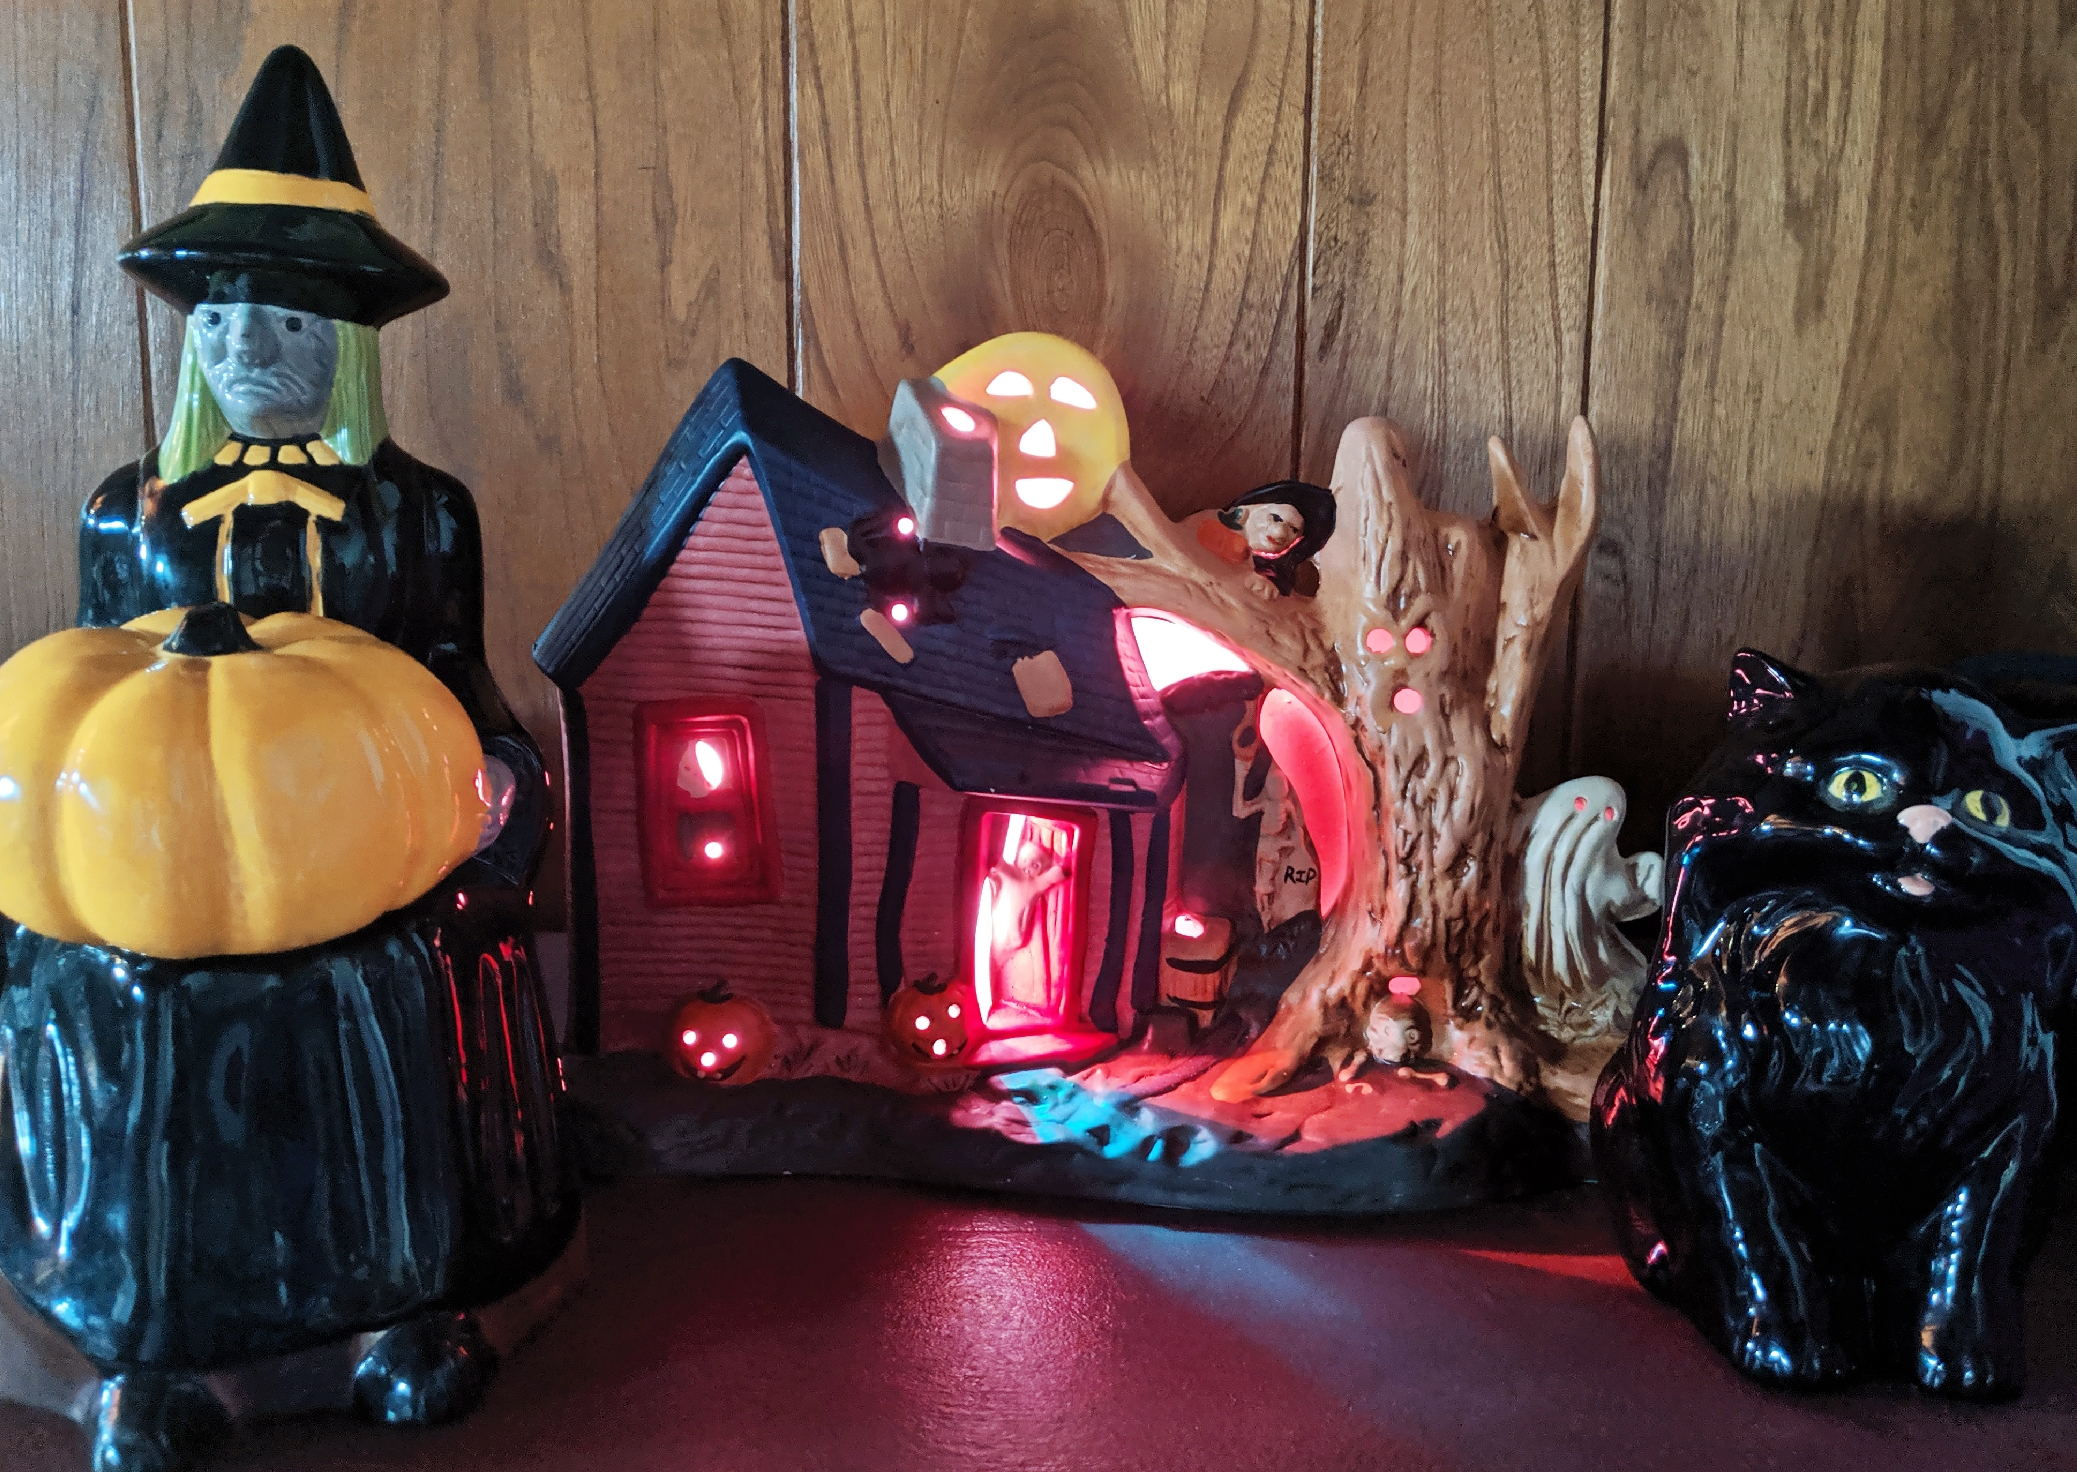 , Plastic is Scary: Green Halloween Costumes & Decorations, The Travel Bug Bite